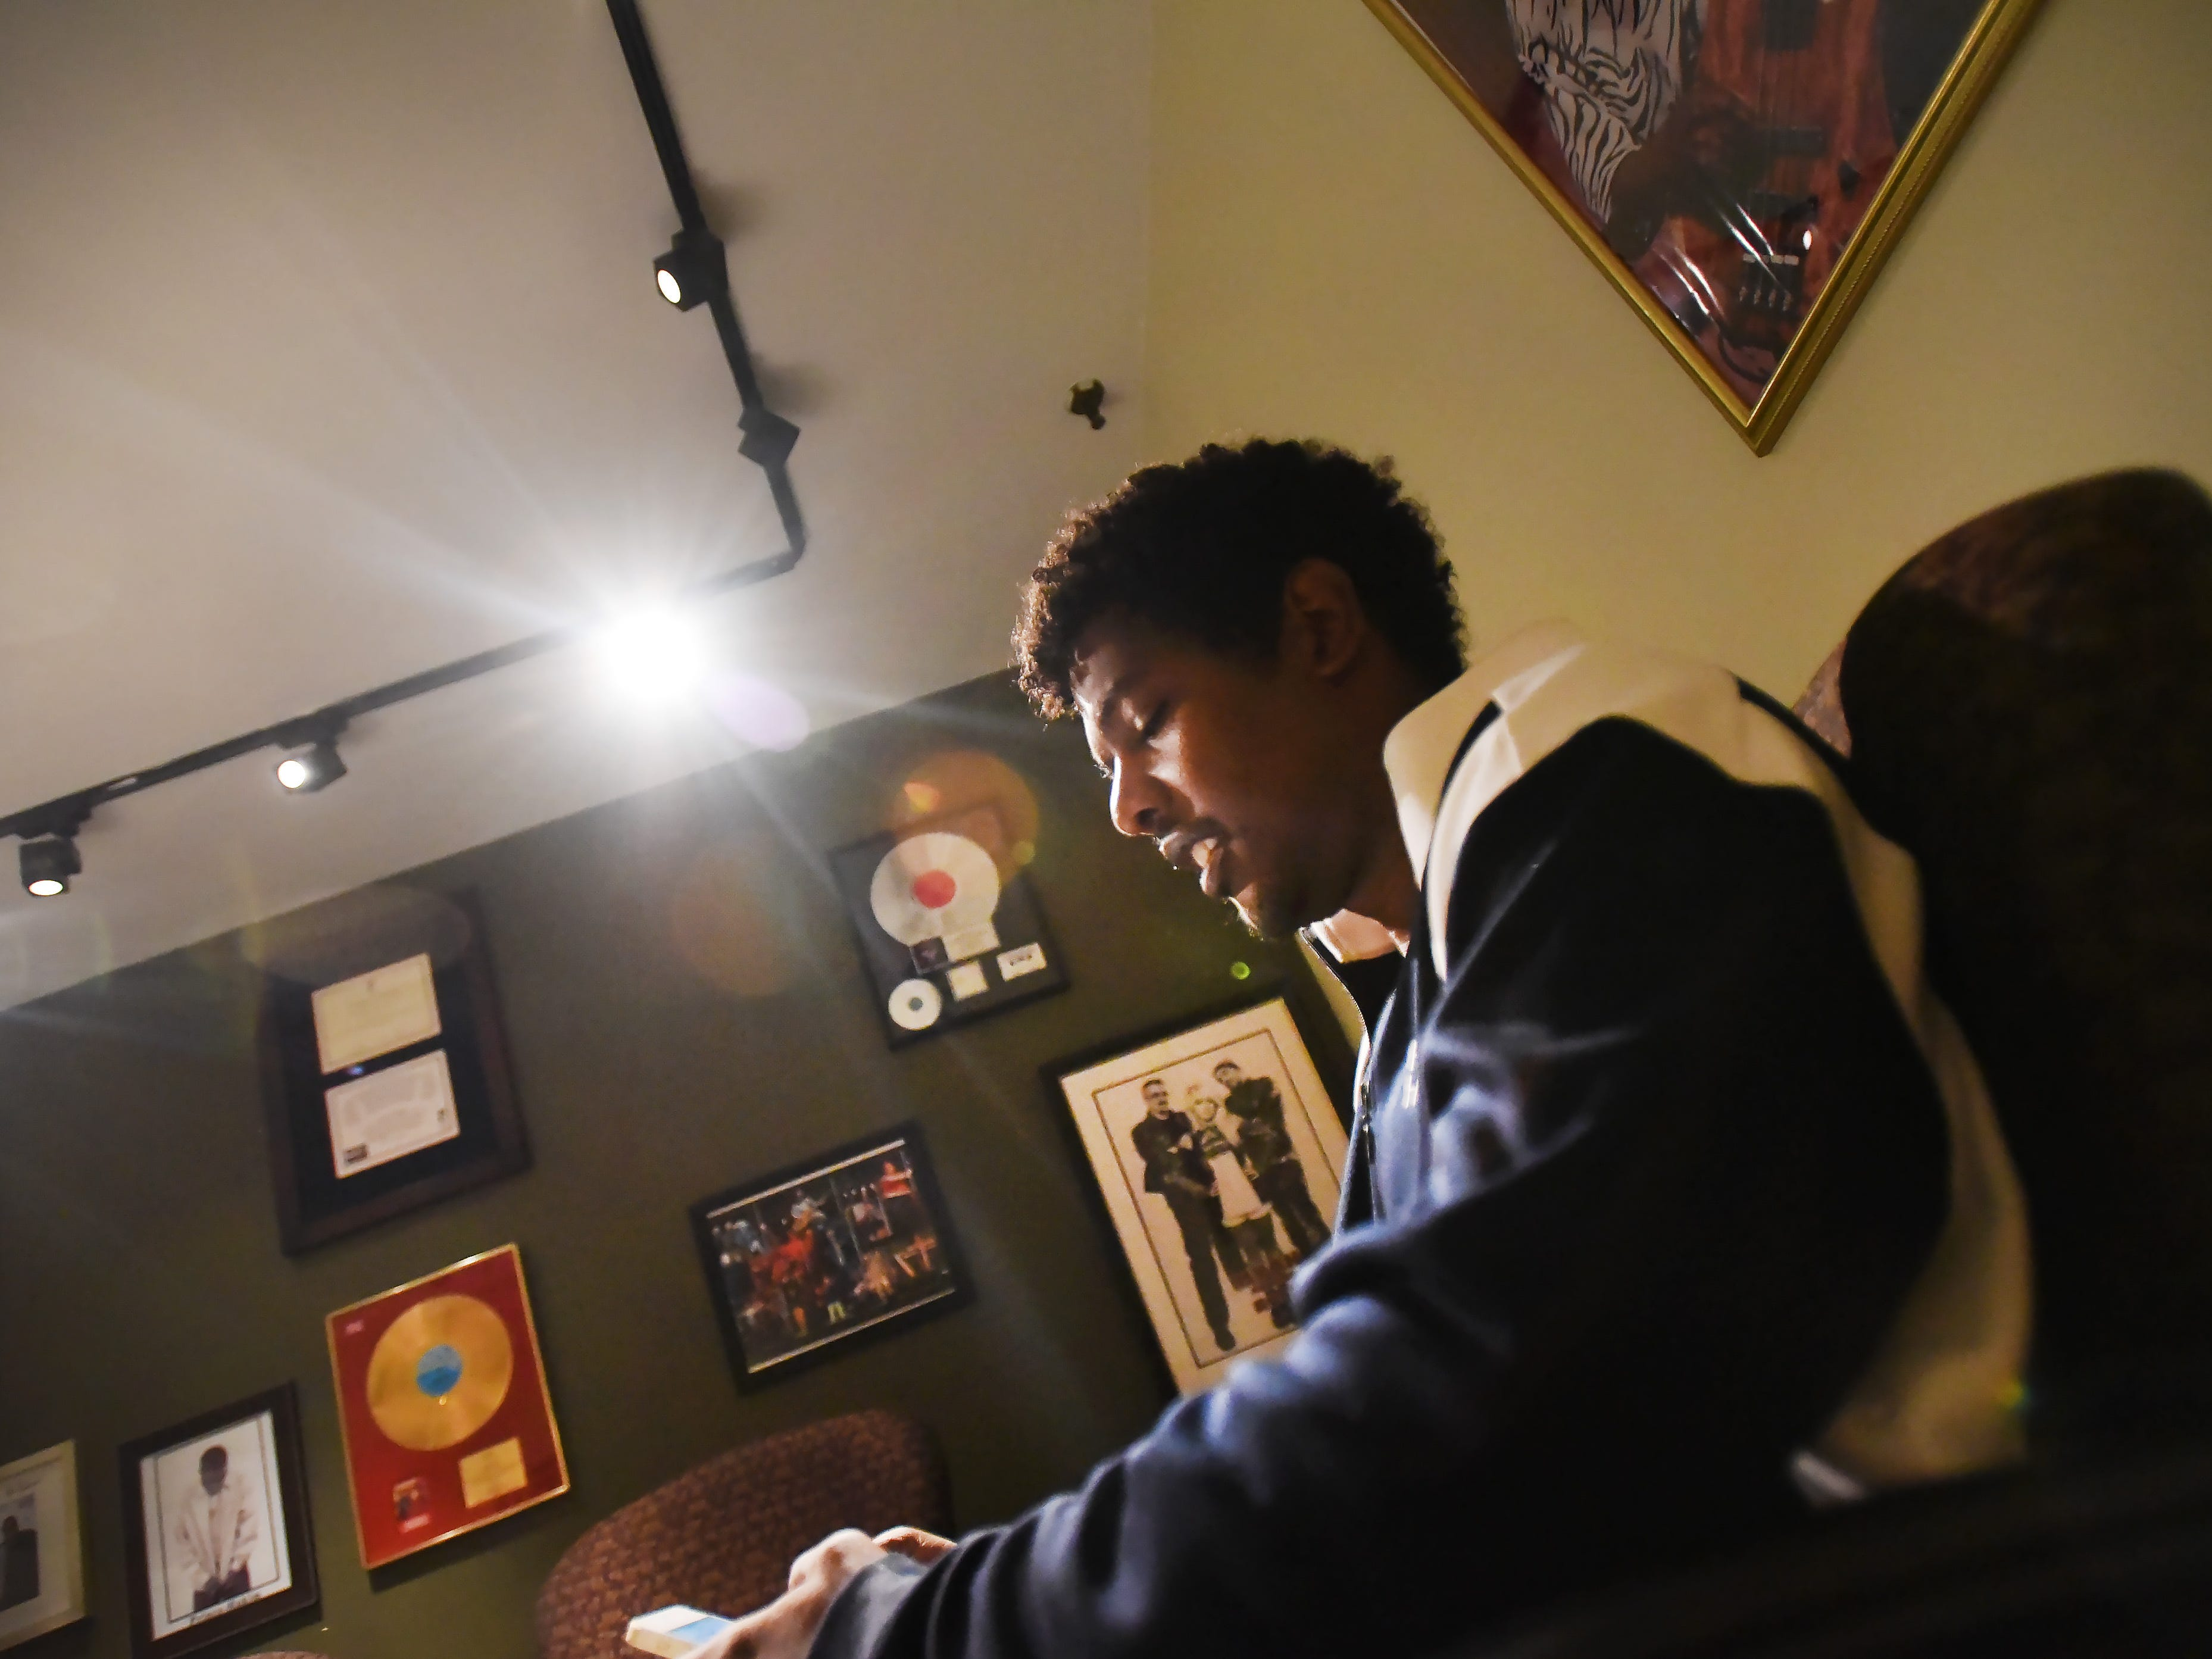 DJ Prince Hakim, the son of Kool from Kool and the Gang, who is making a name for himself as a producer and performer, is seen at his office in Montclair on 09/10/18.His new track ROYALTY will make its debut on WBLS next Thursday.